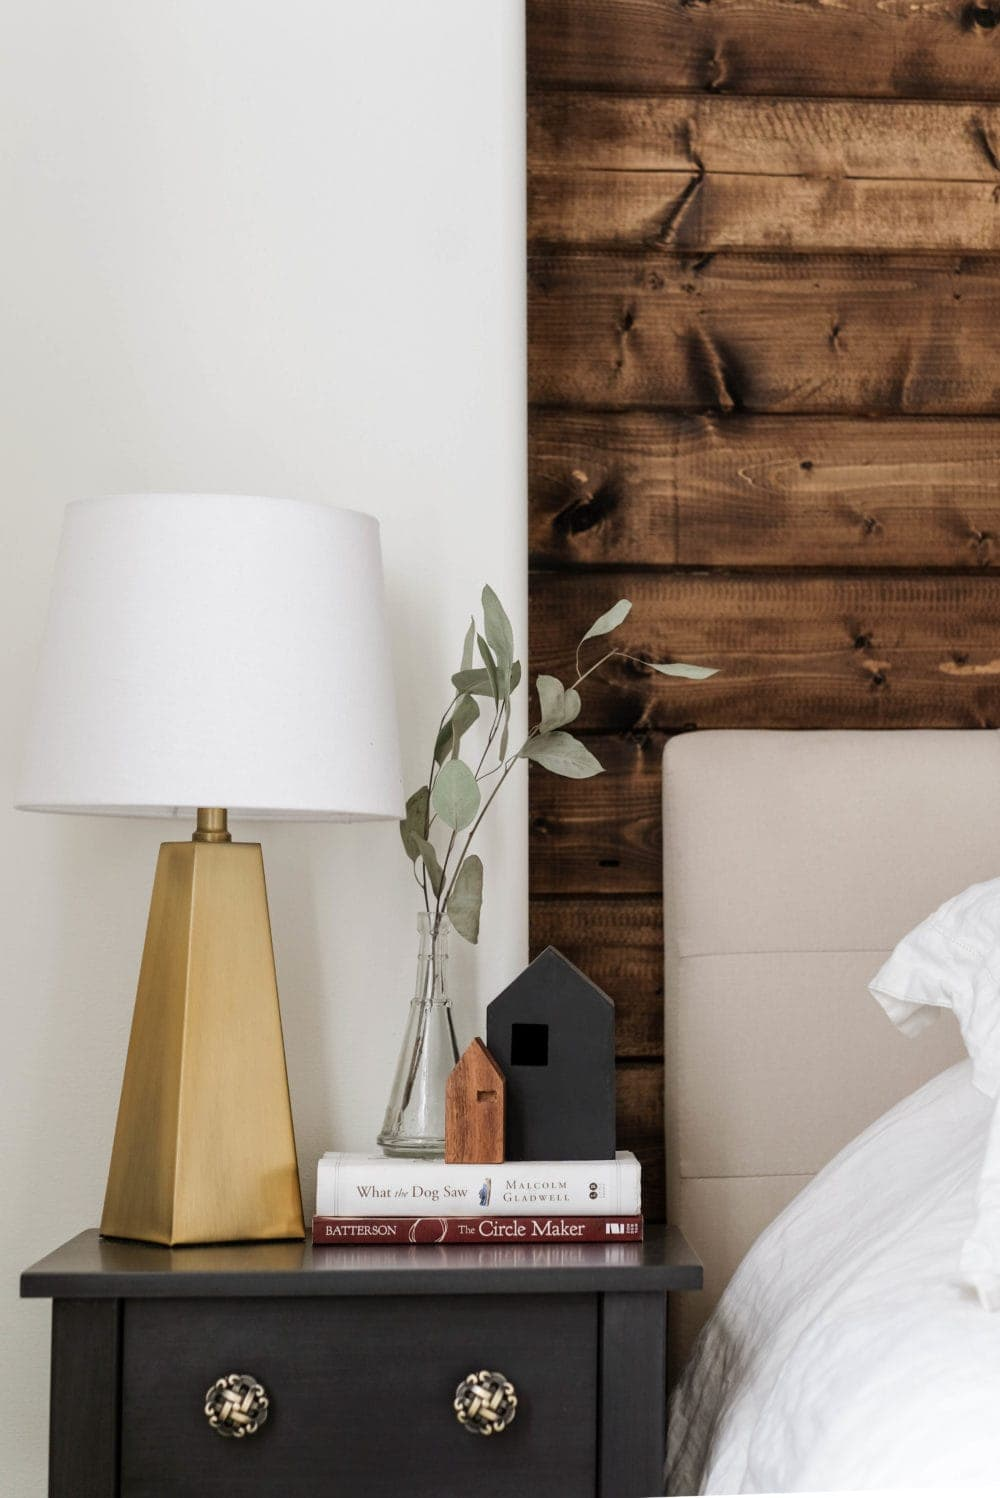 Christmas bedroom decor ideas including a nightstand styled with a gold lamp, books and a plant